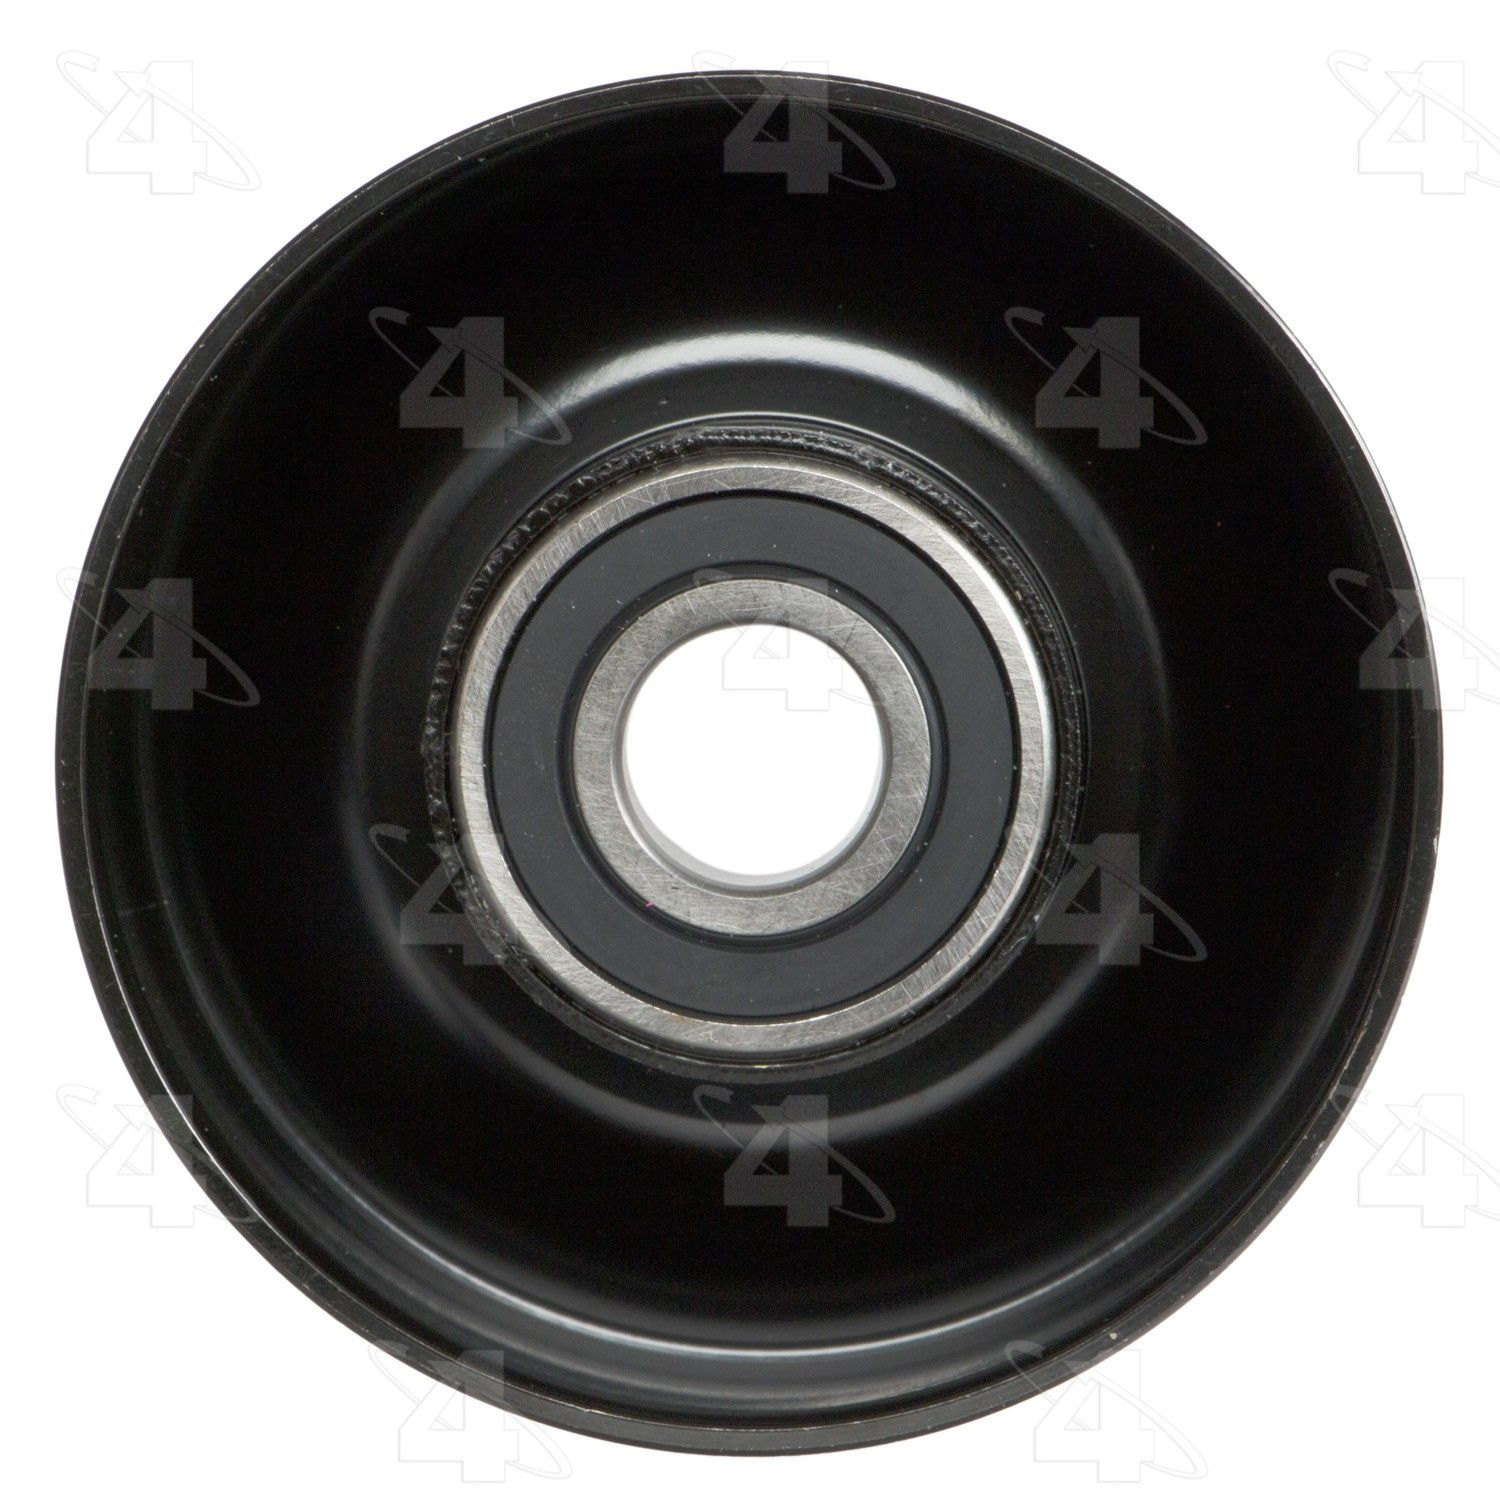 Dodge Dynasty 1990 Idler Tensioner Pulley: Accessory Drive Belt Tensioner Pulley Replacement (ACDelco